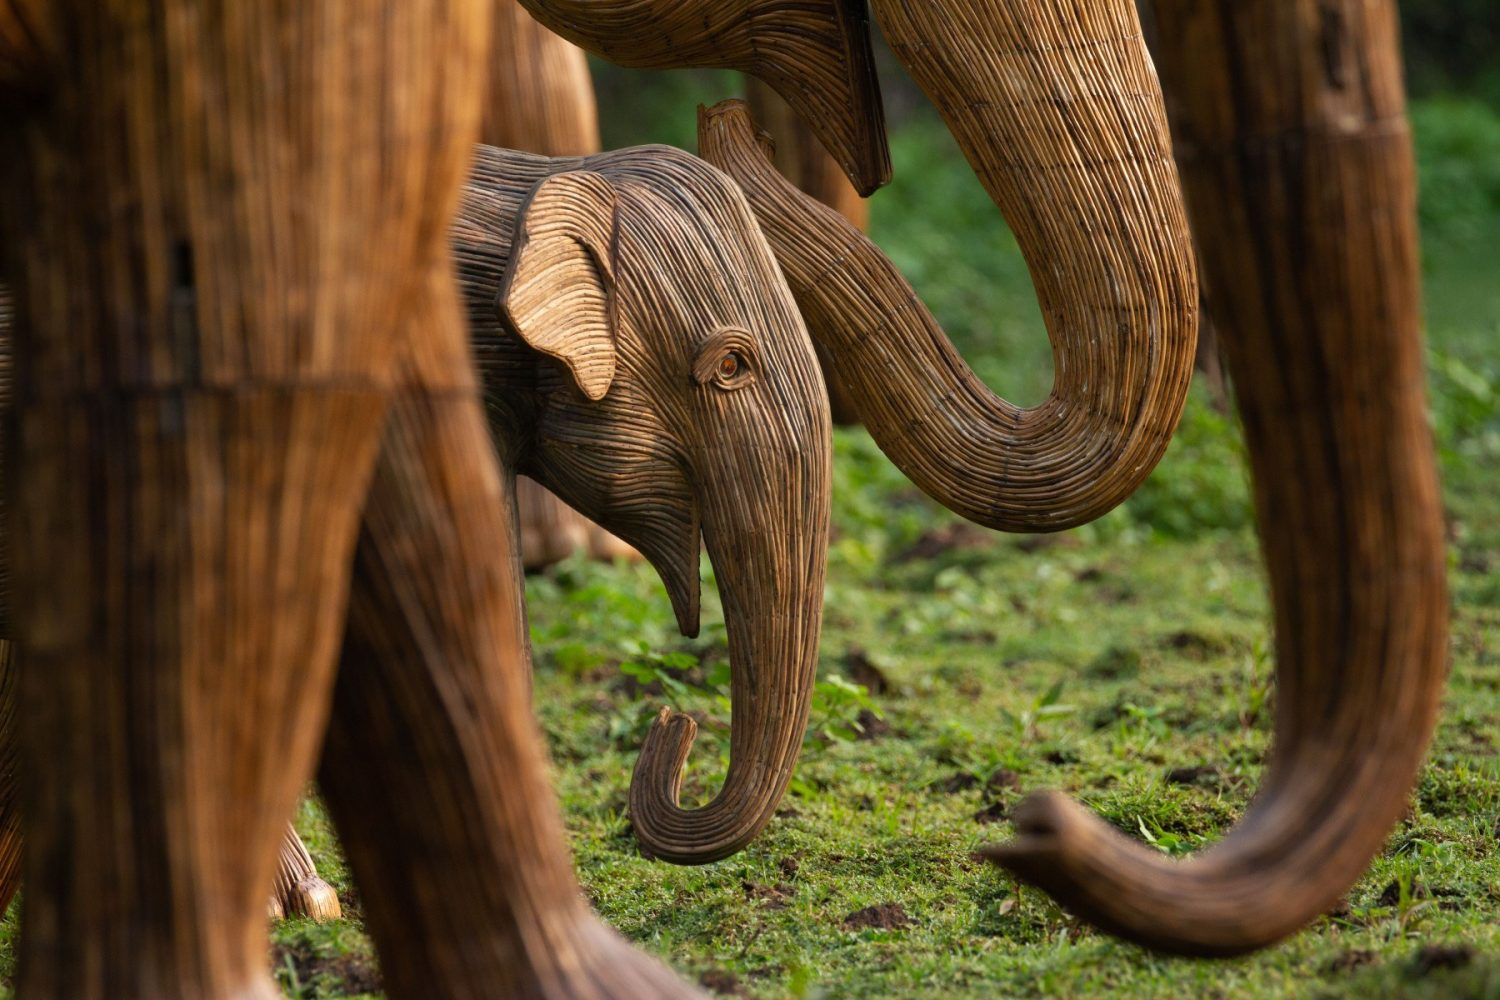 Life size baby elephant sculptures surrounded by adult elephant trunks